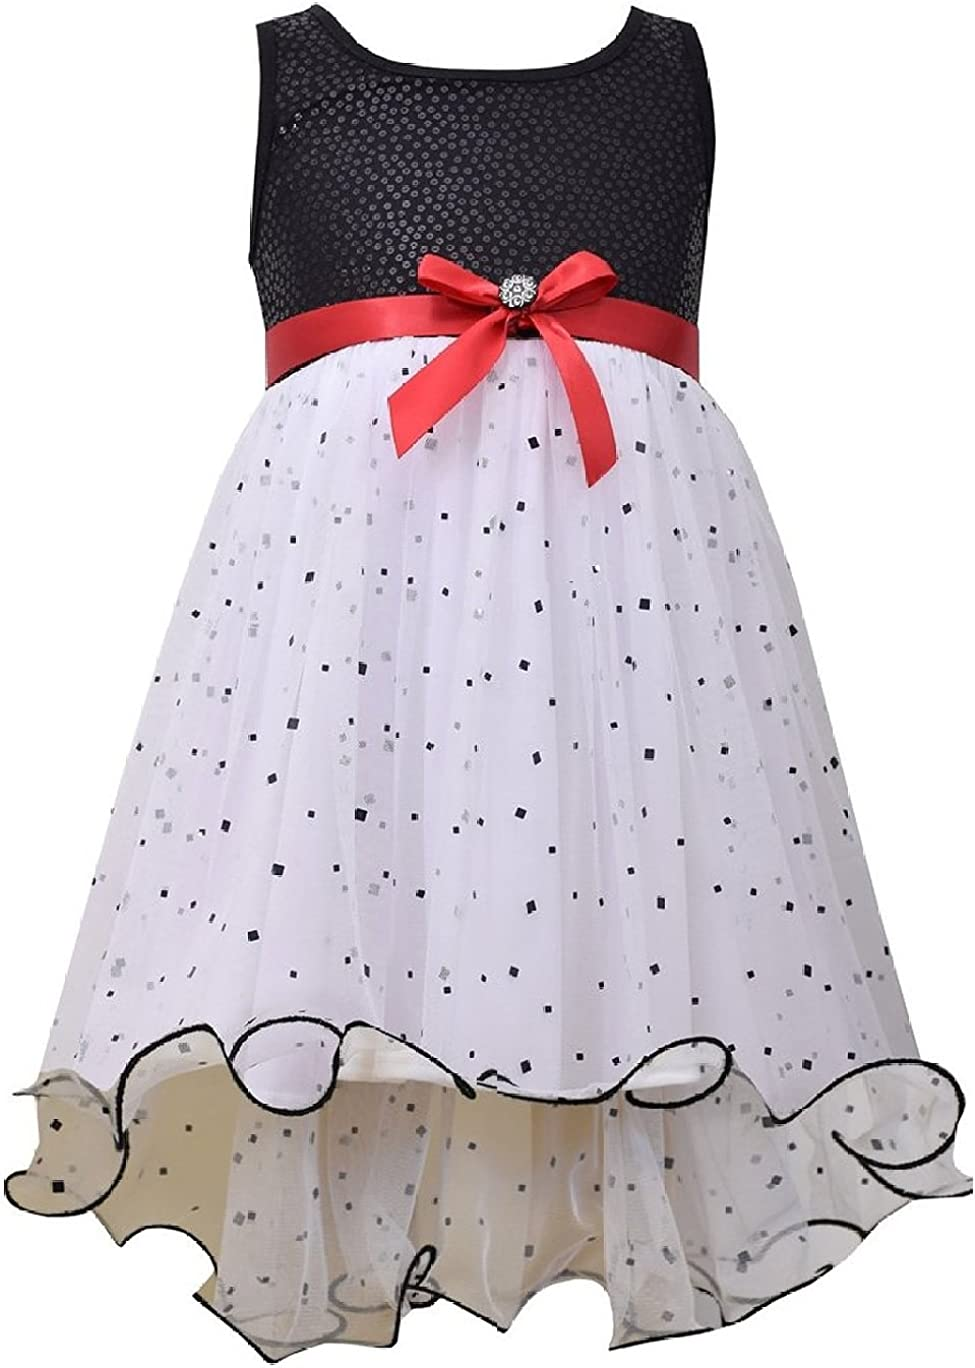 Bonnie Selling and selling Jean Girls' We OFFer at cheap prices Spangled Dot Hi-Low Dress